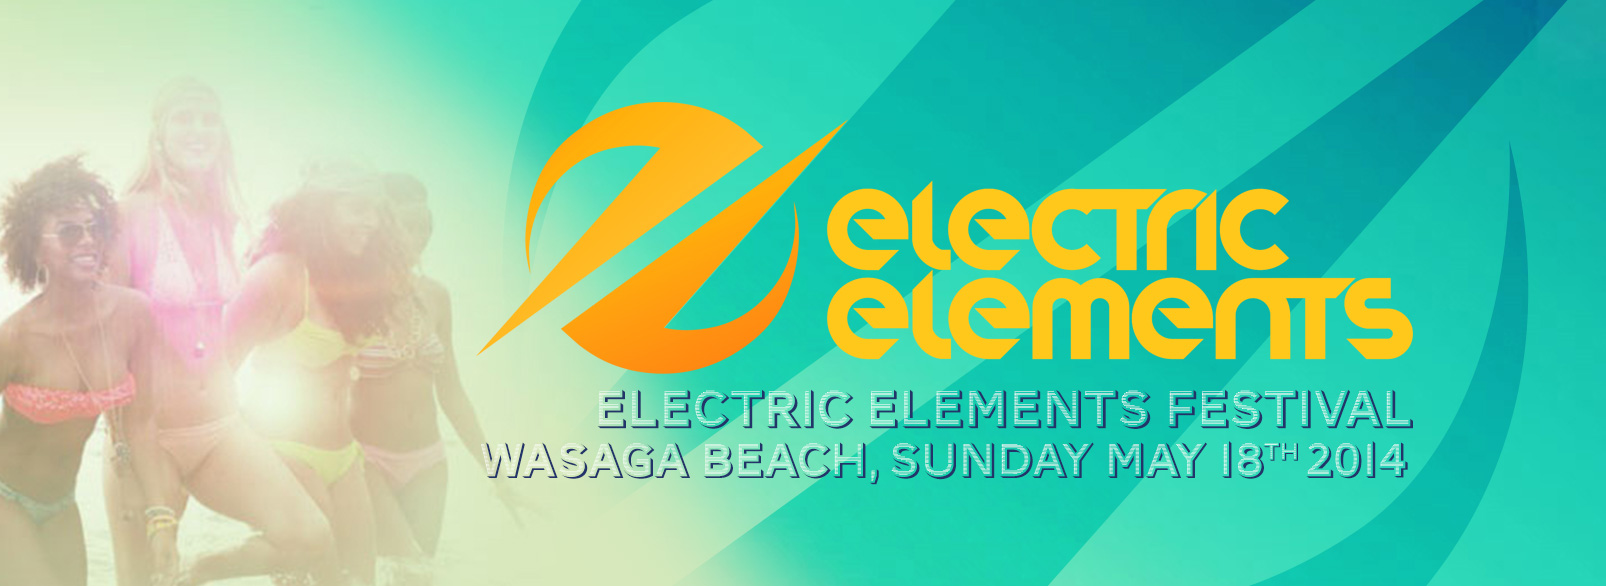 Electric Elements Festival